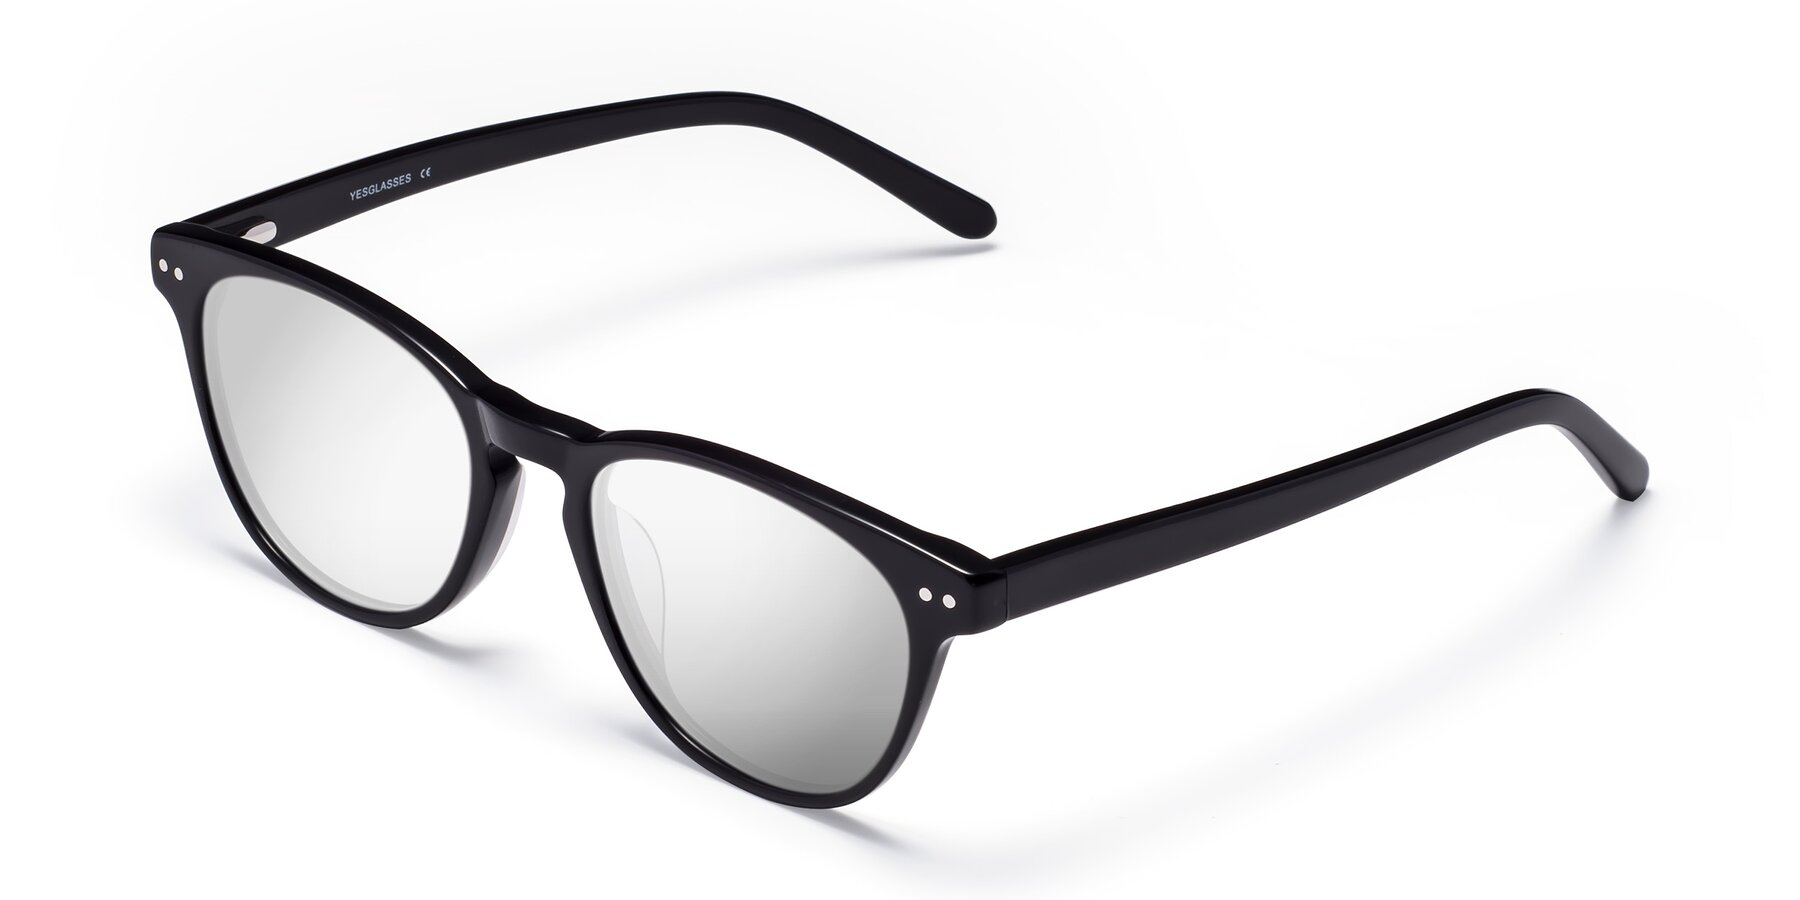 Angle of Blaze in Black with Silver Mirrored Lenses